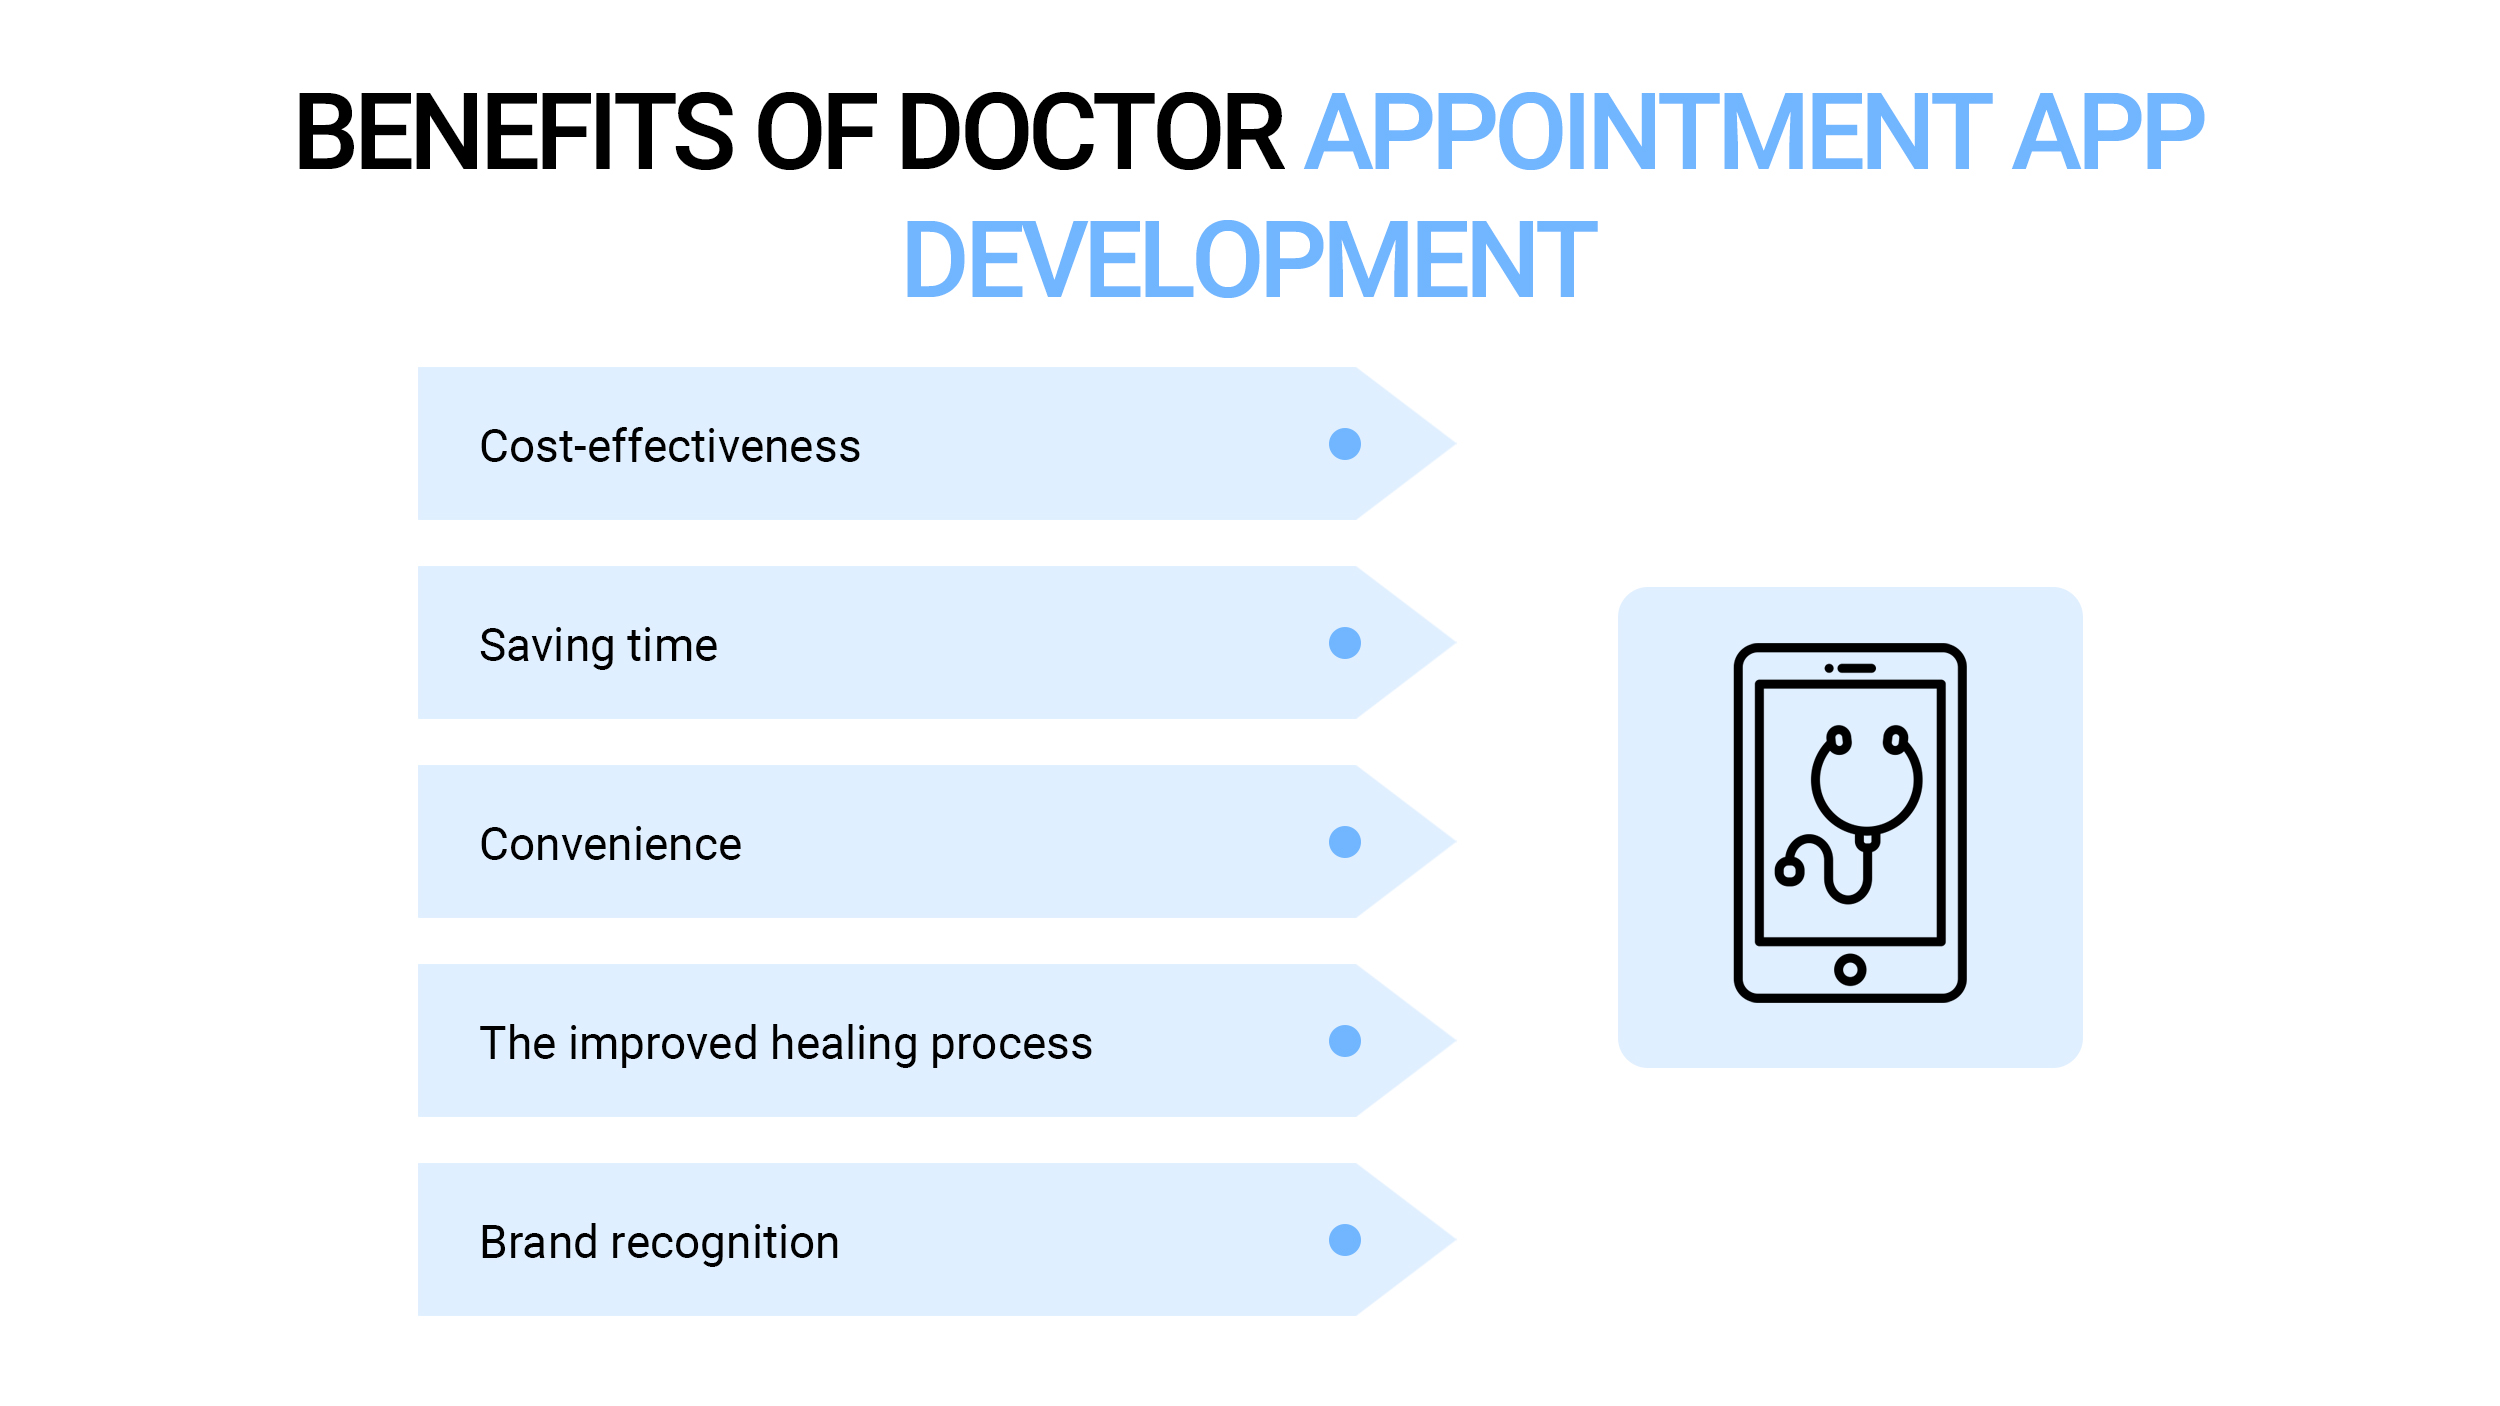 Benefits of doctor appointment app development